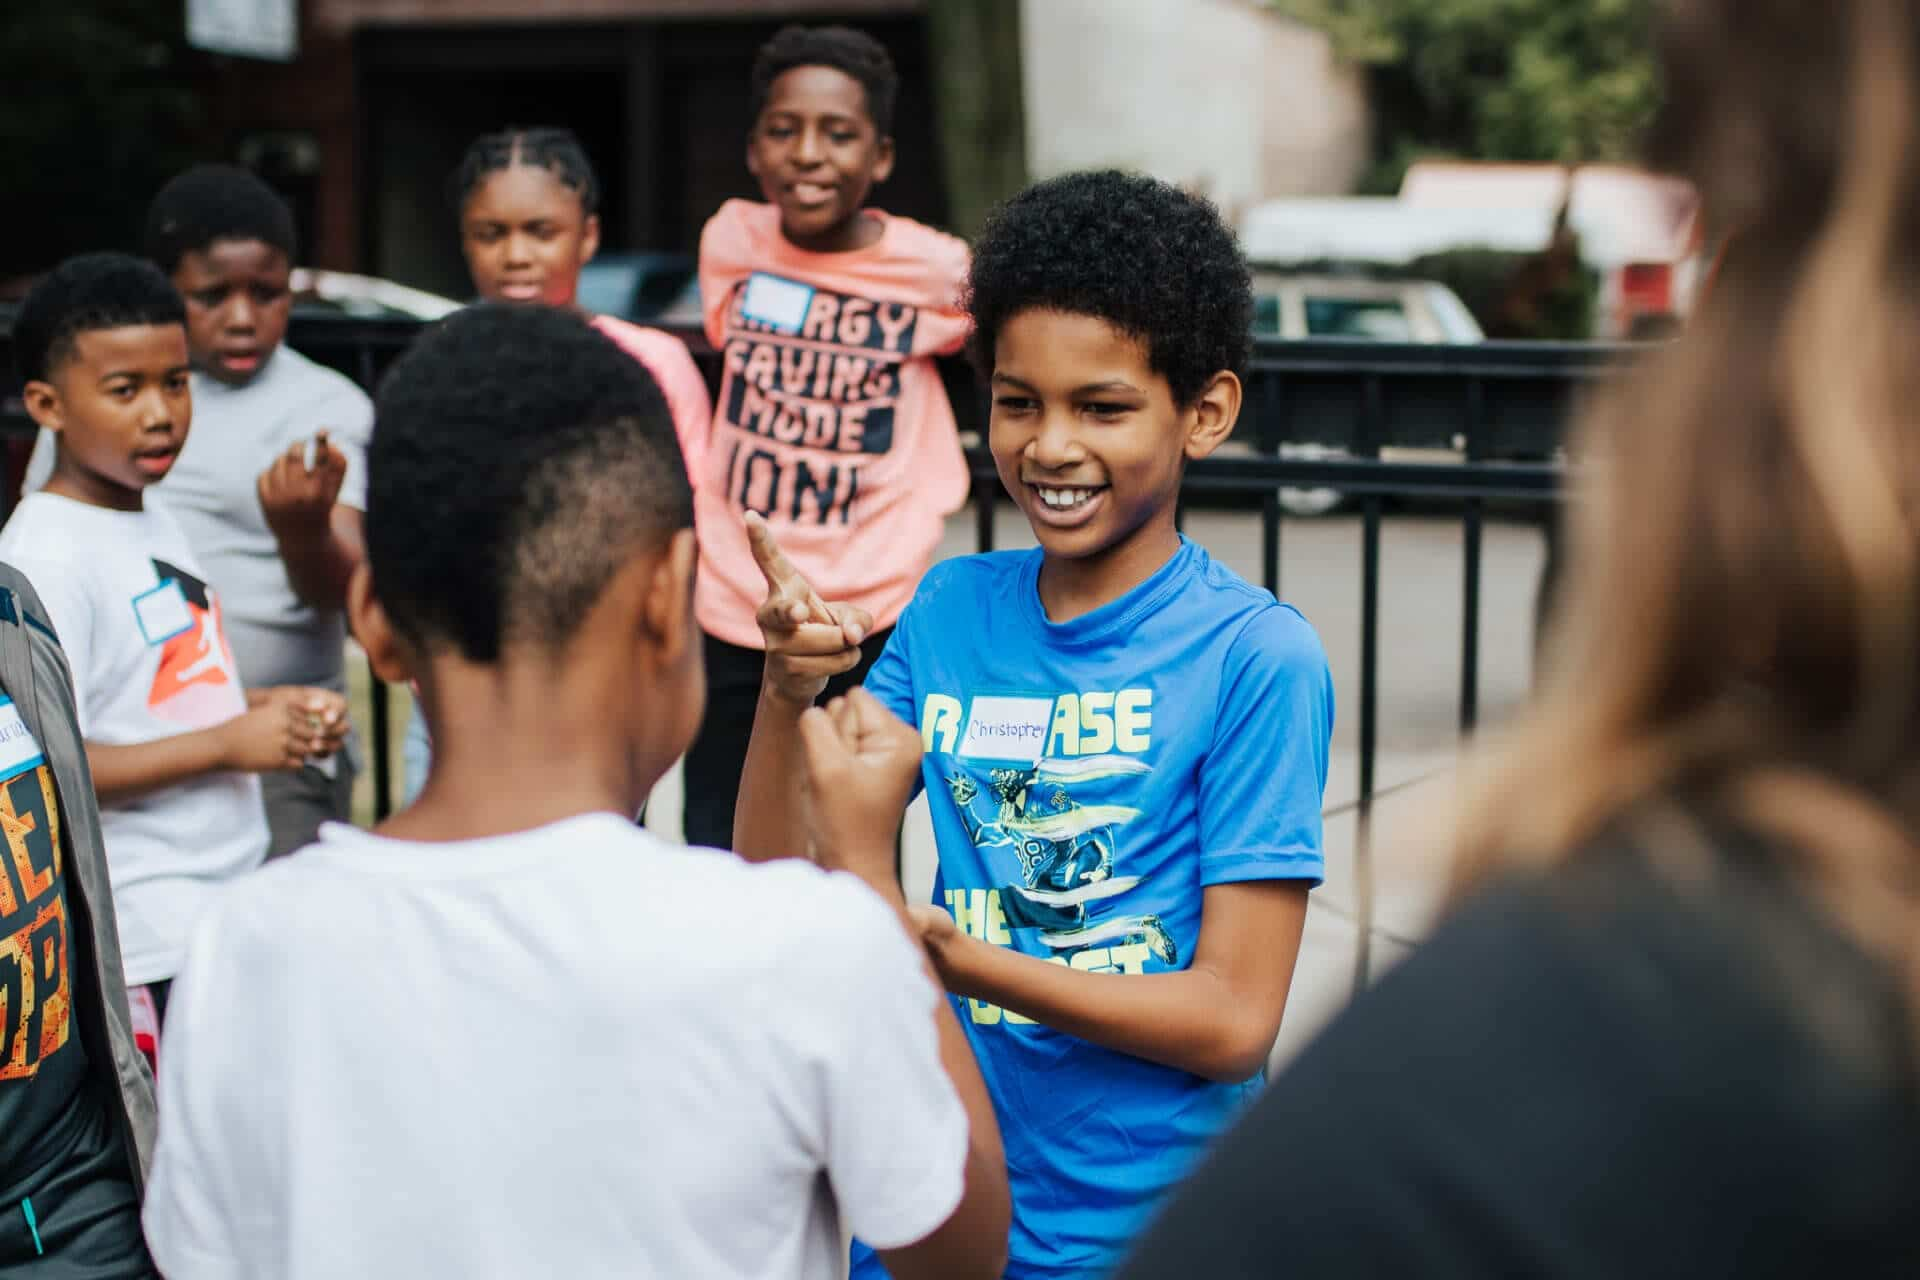 boys playing rock-paper-scissors at youth olympics events in East Garfield Park